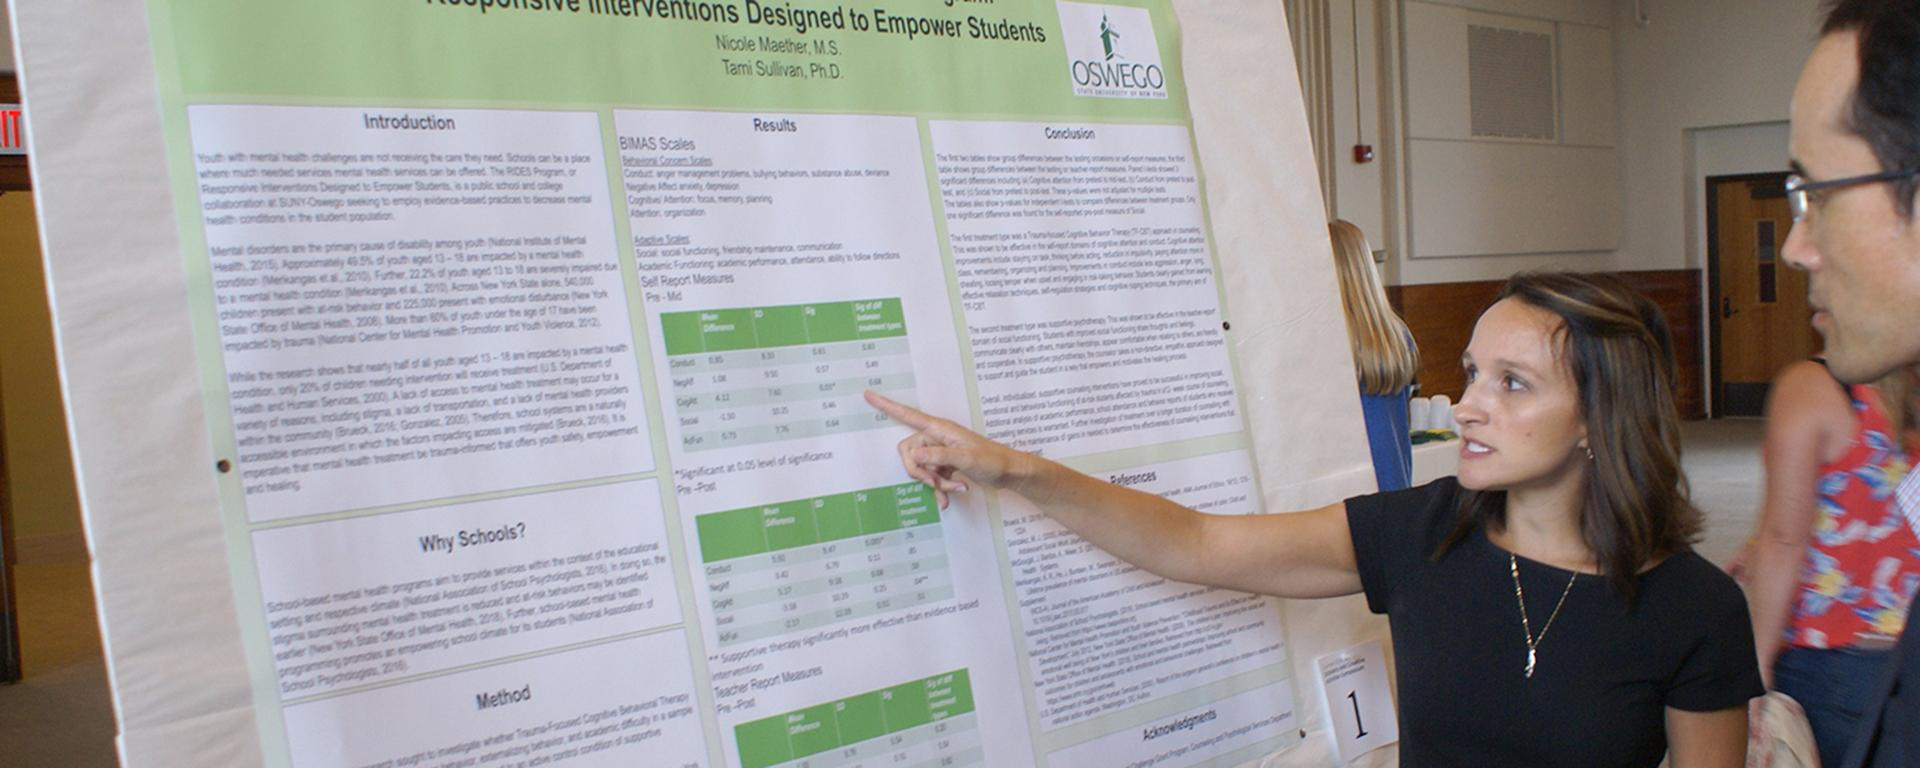 Student presents school-based research